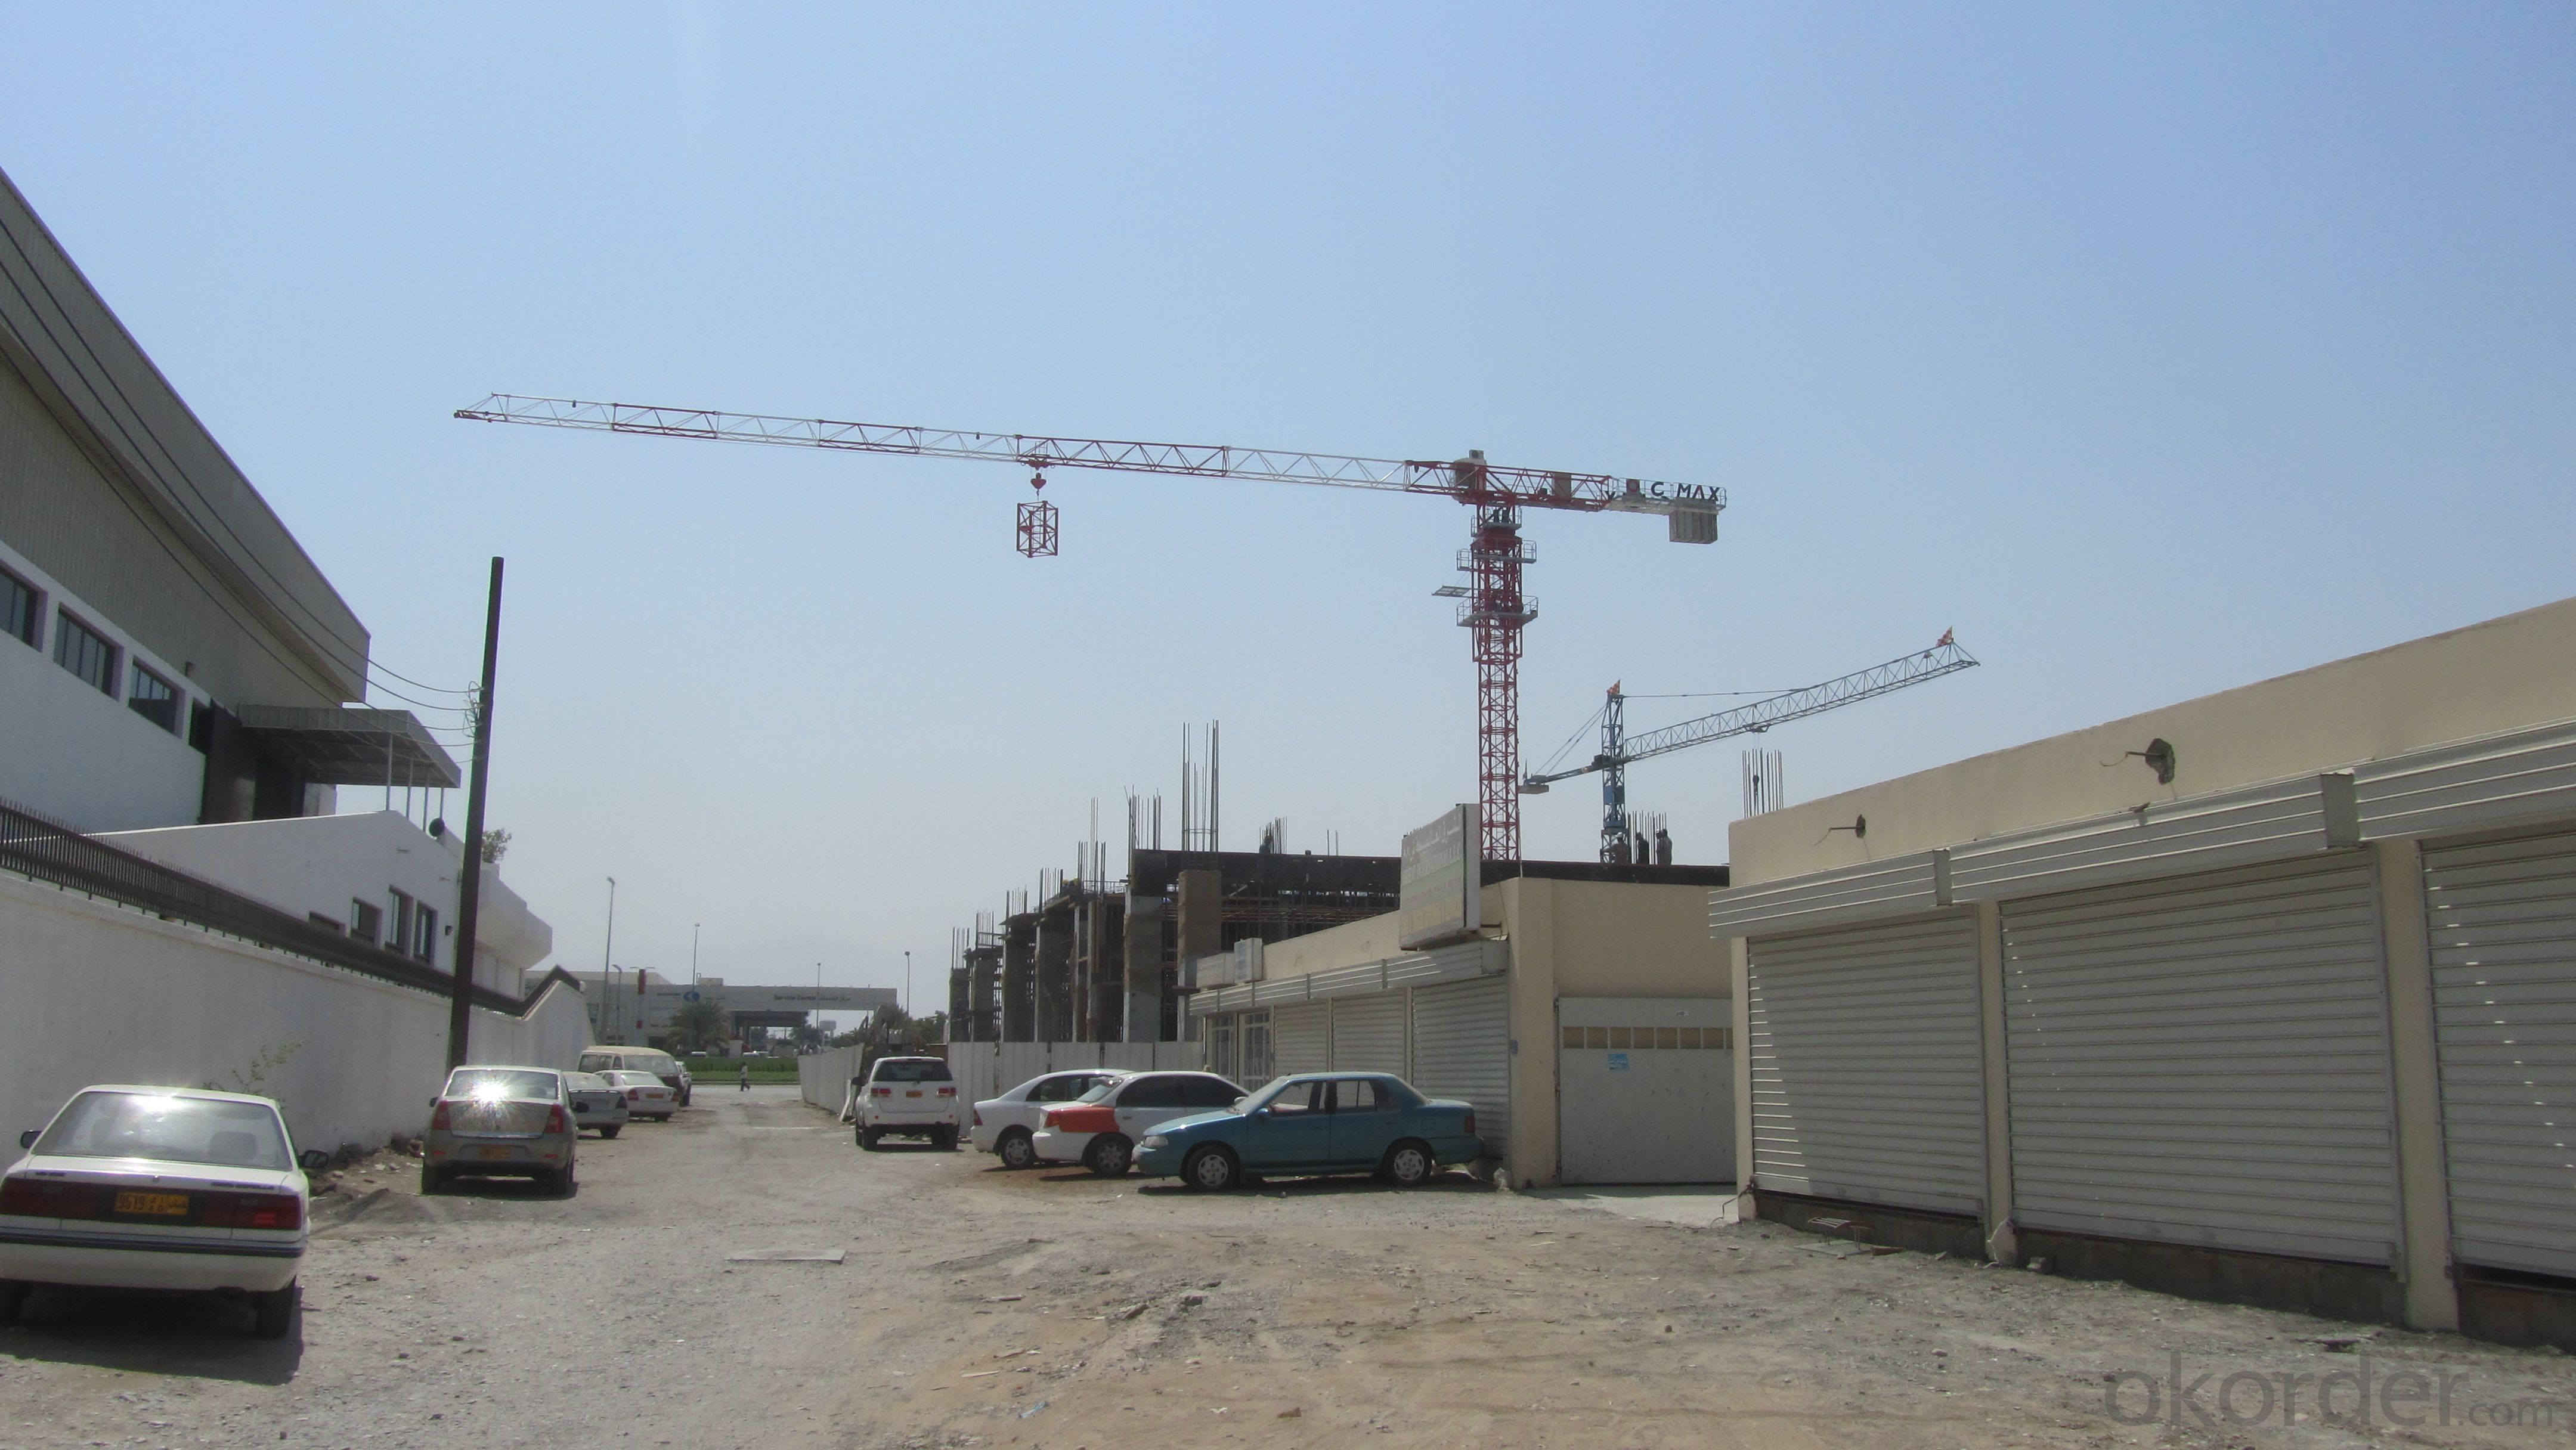 JLP6010 ToplessTower crane for construction site